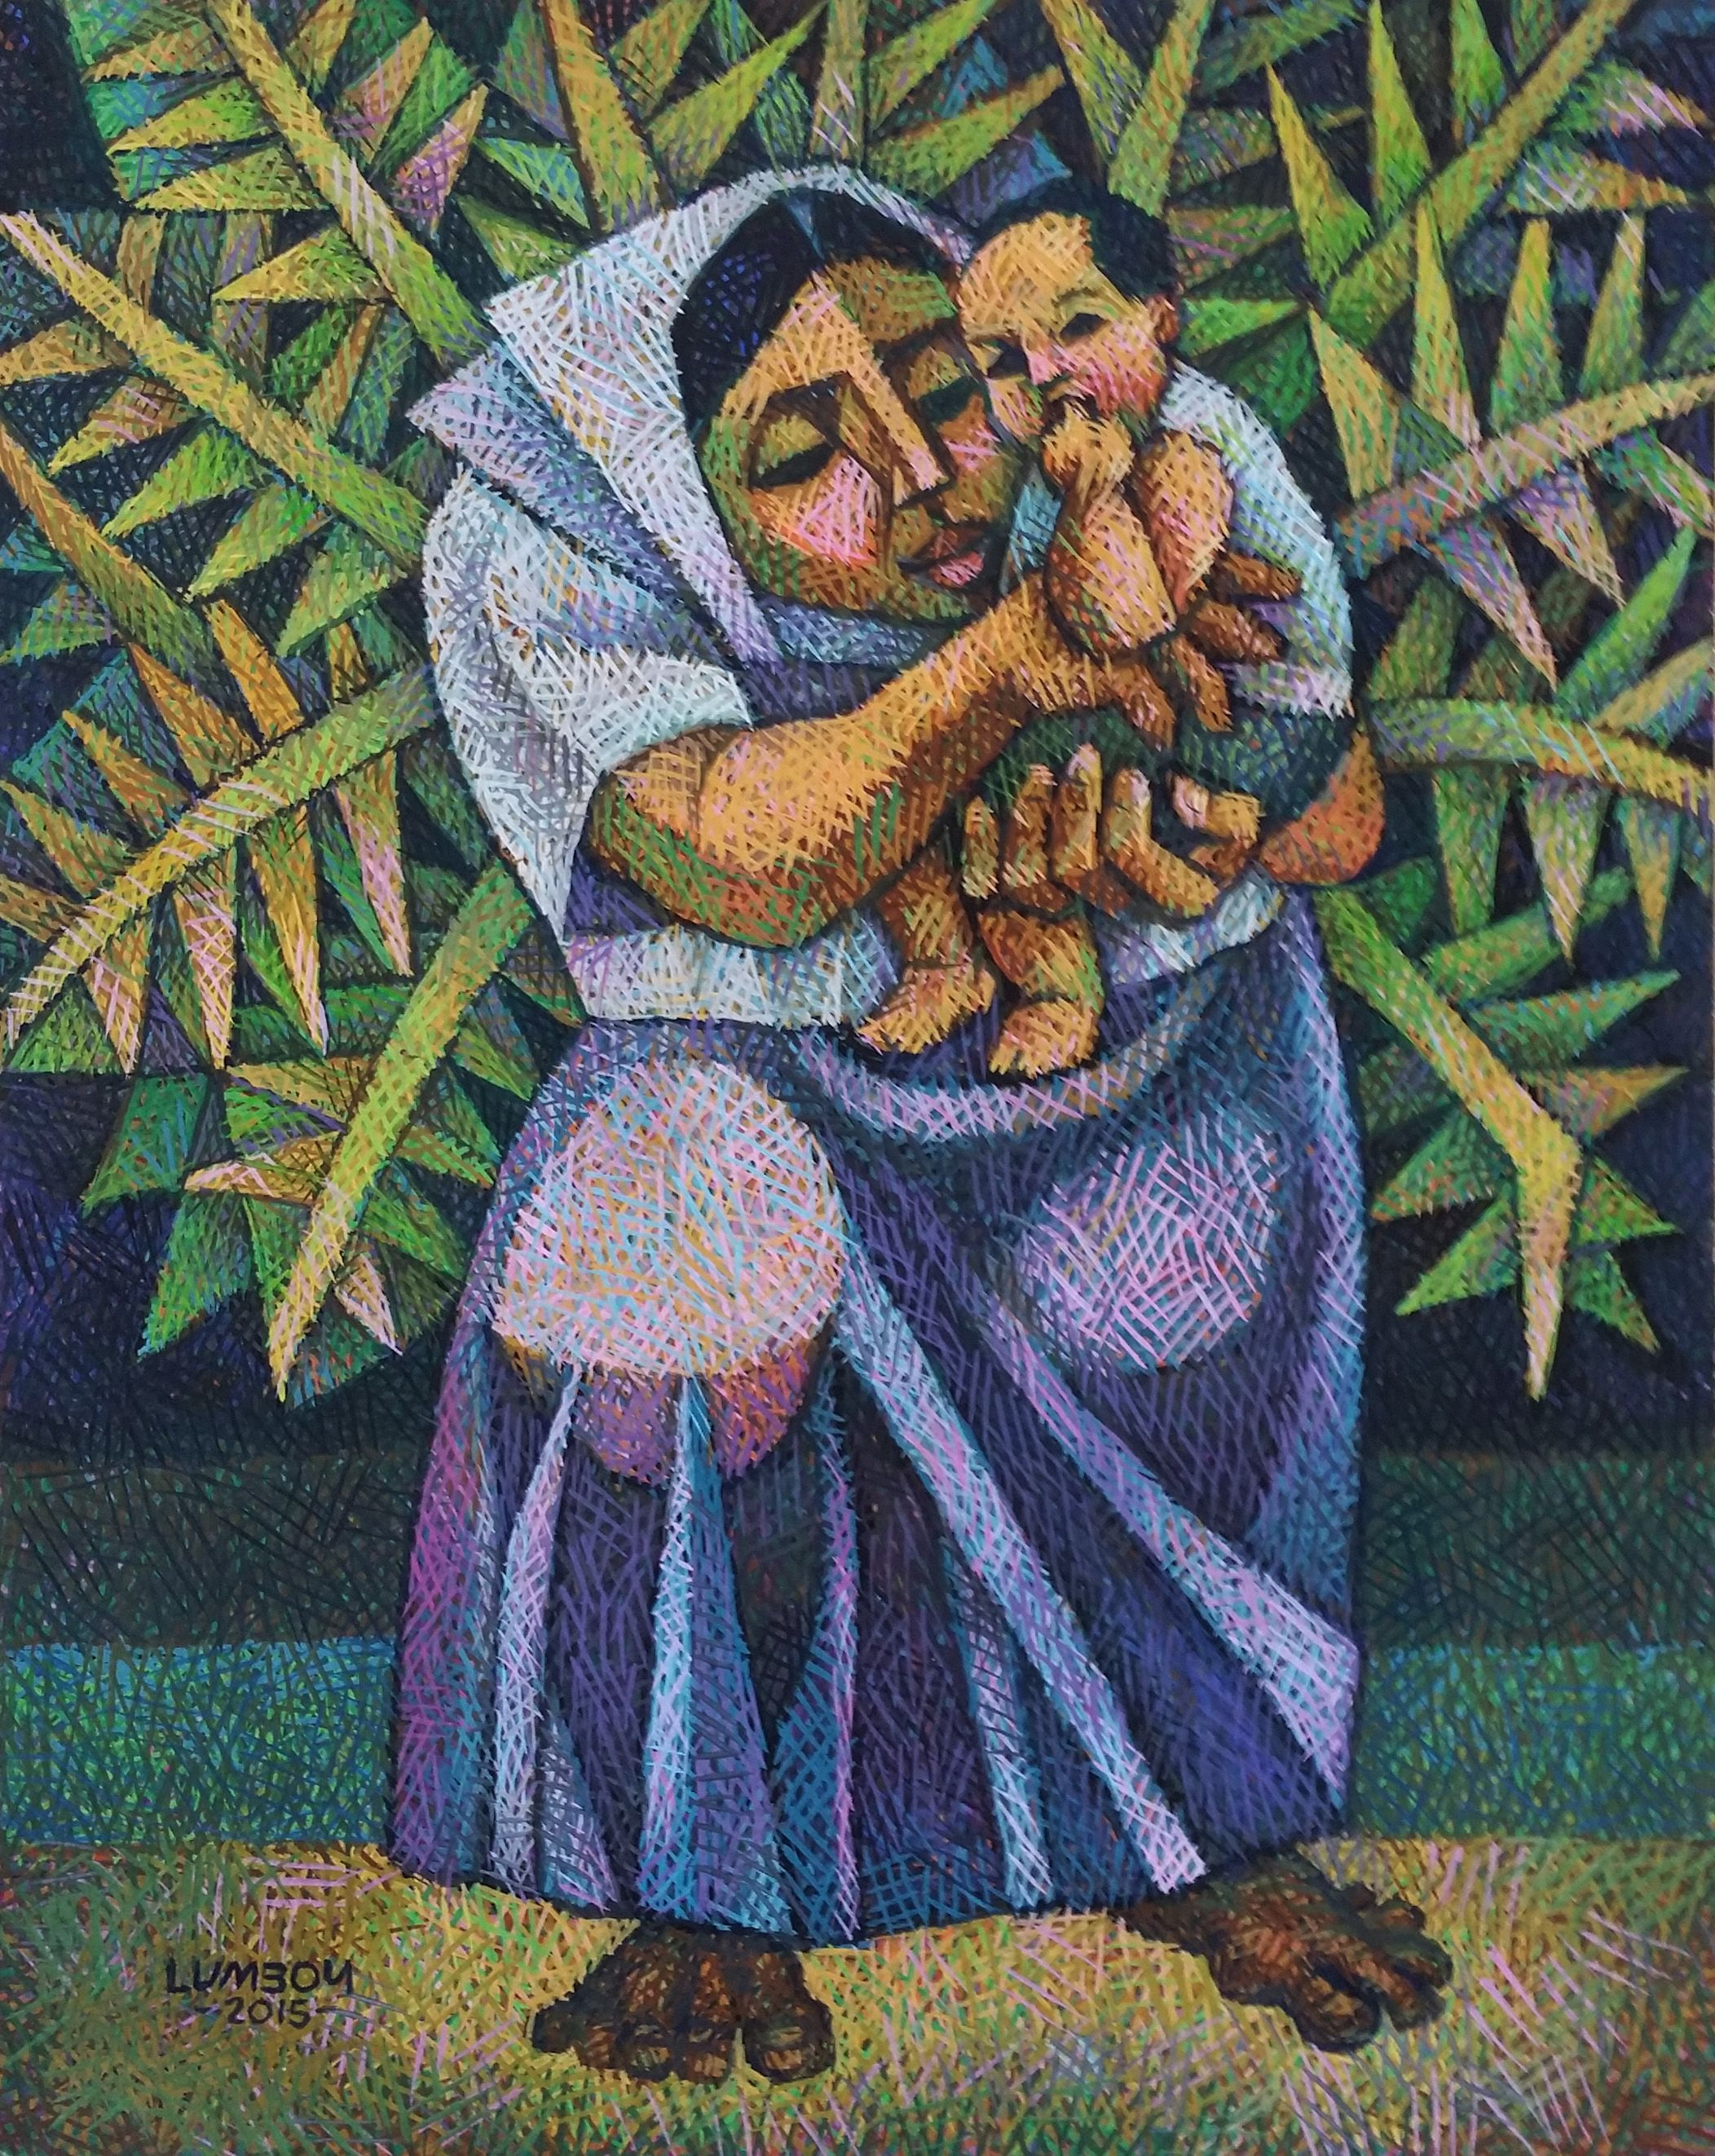 In Loving Arms by Ninoy Lumboy, a Filipino artist